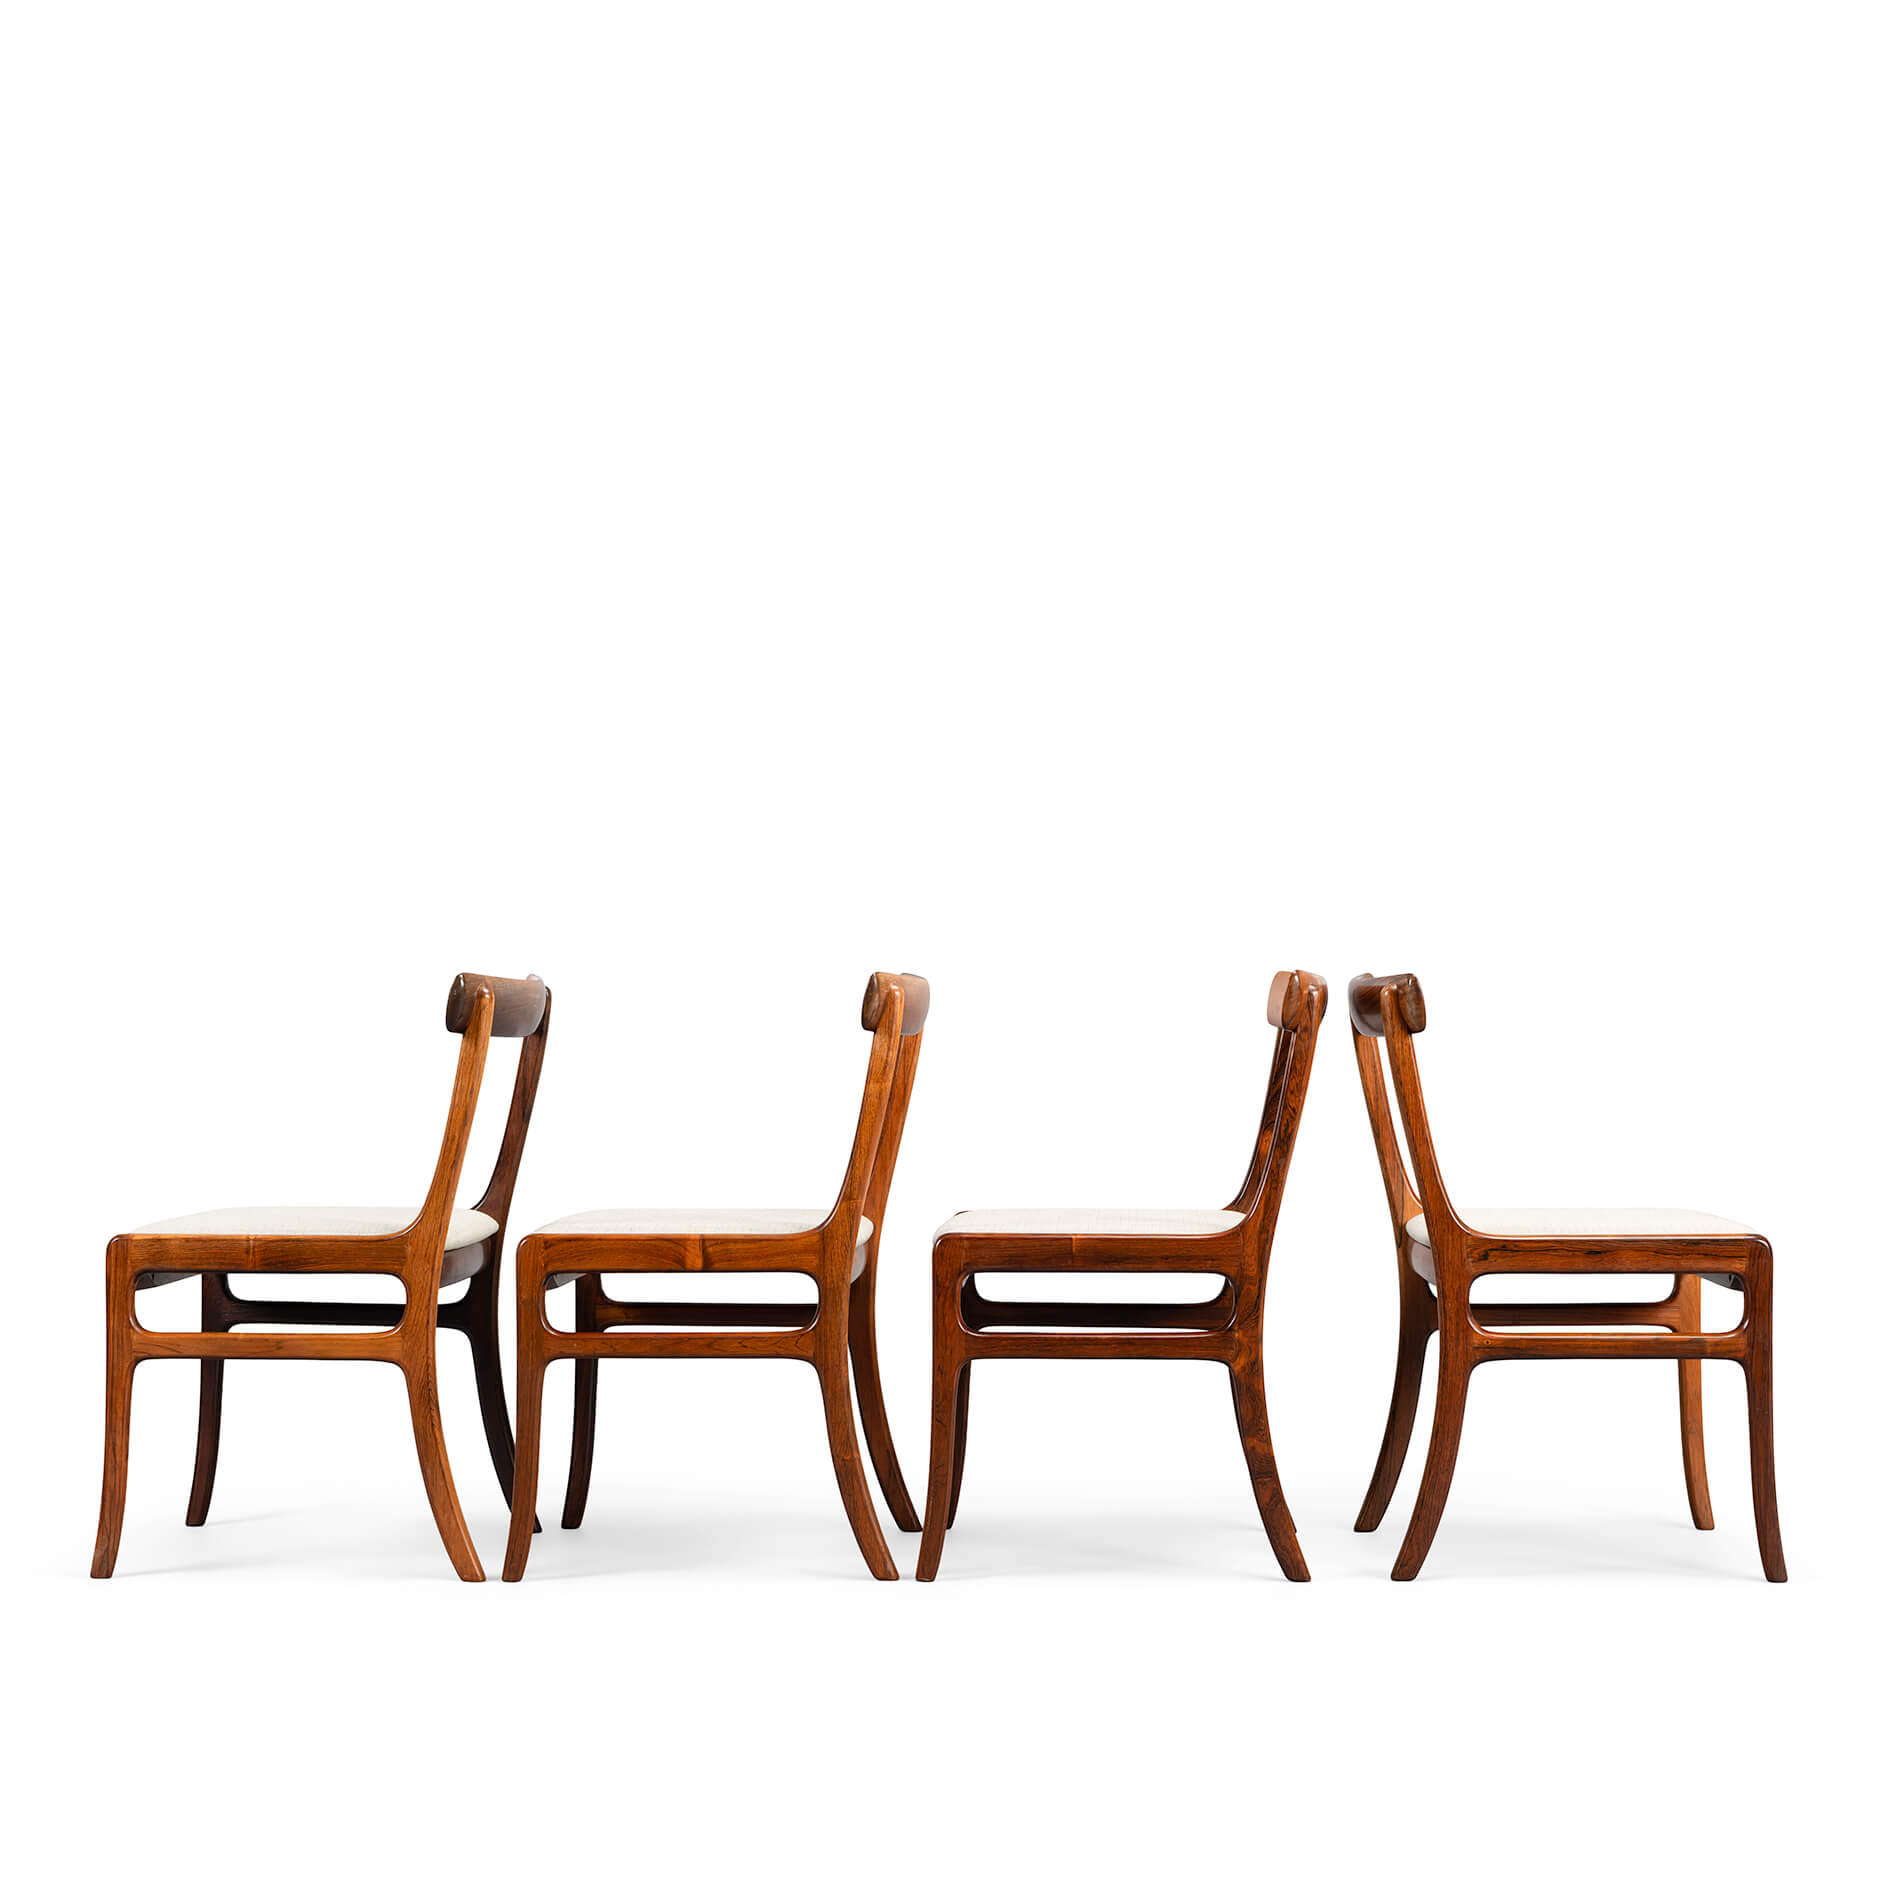 Rungstedlund stoelen, set of 4